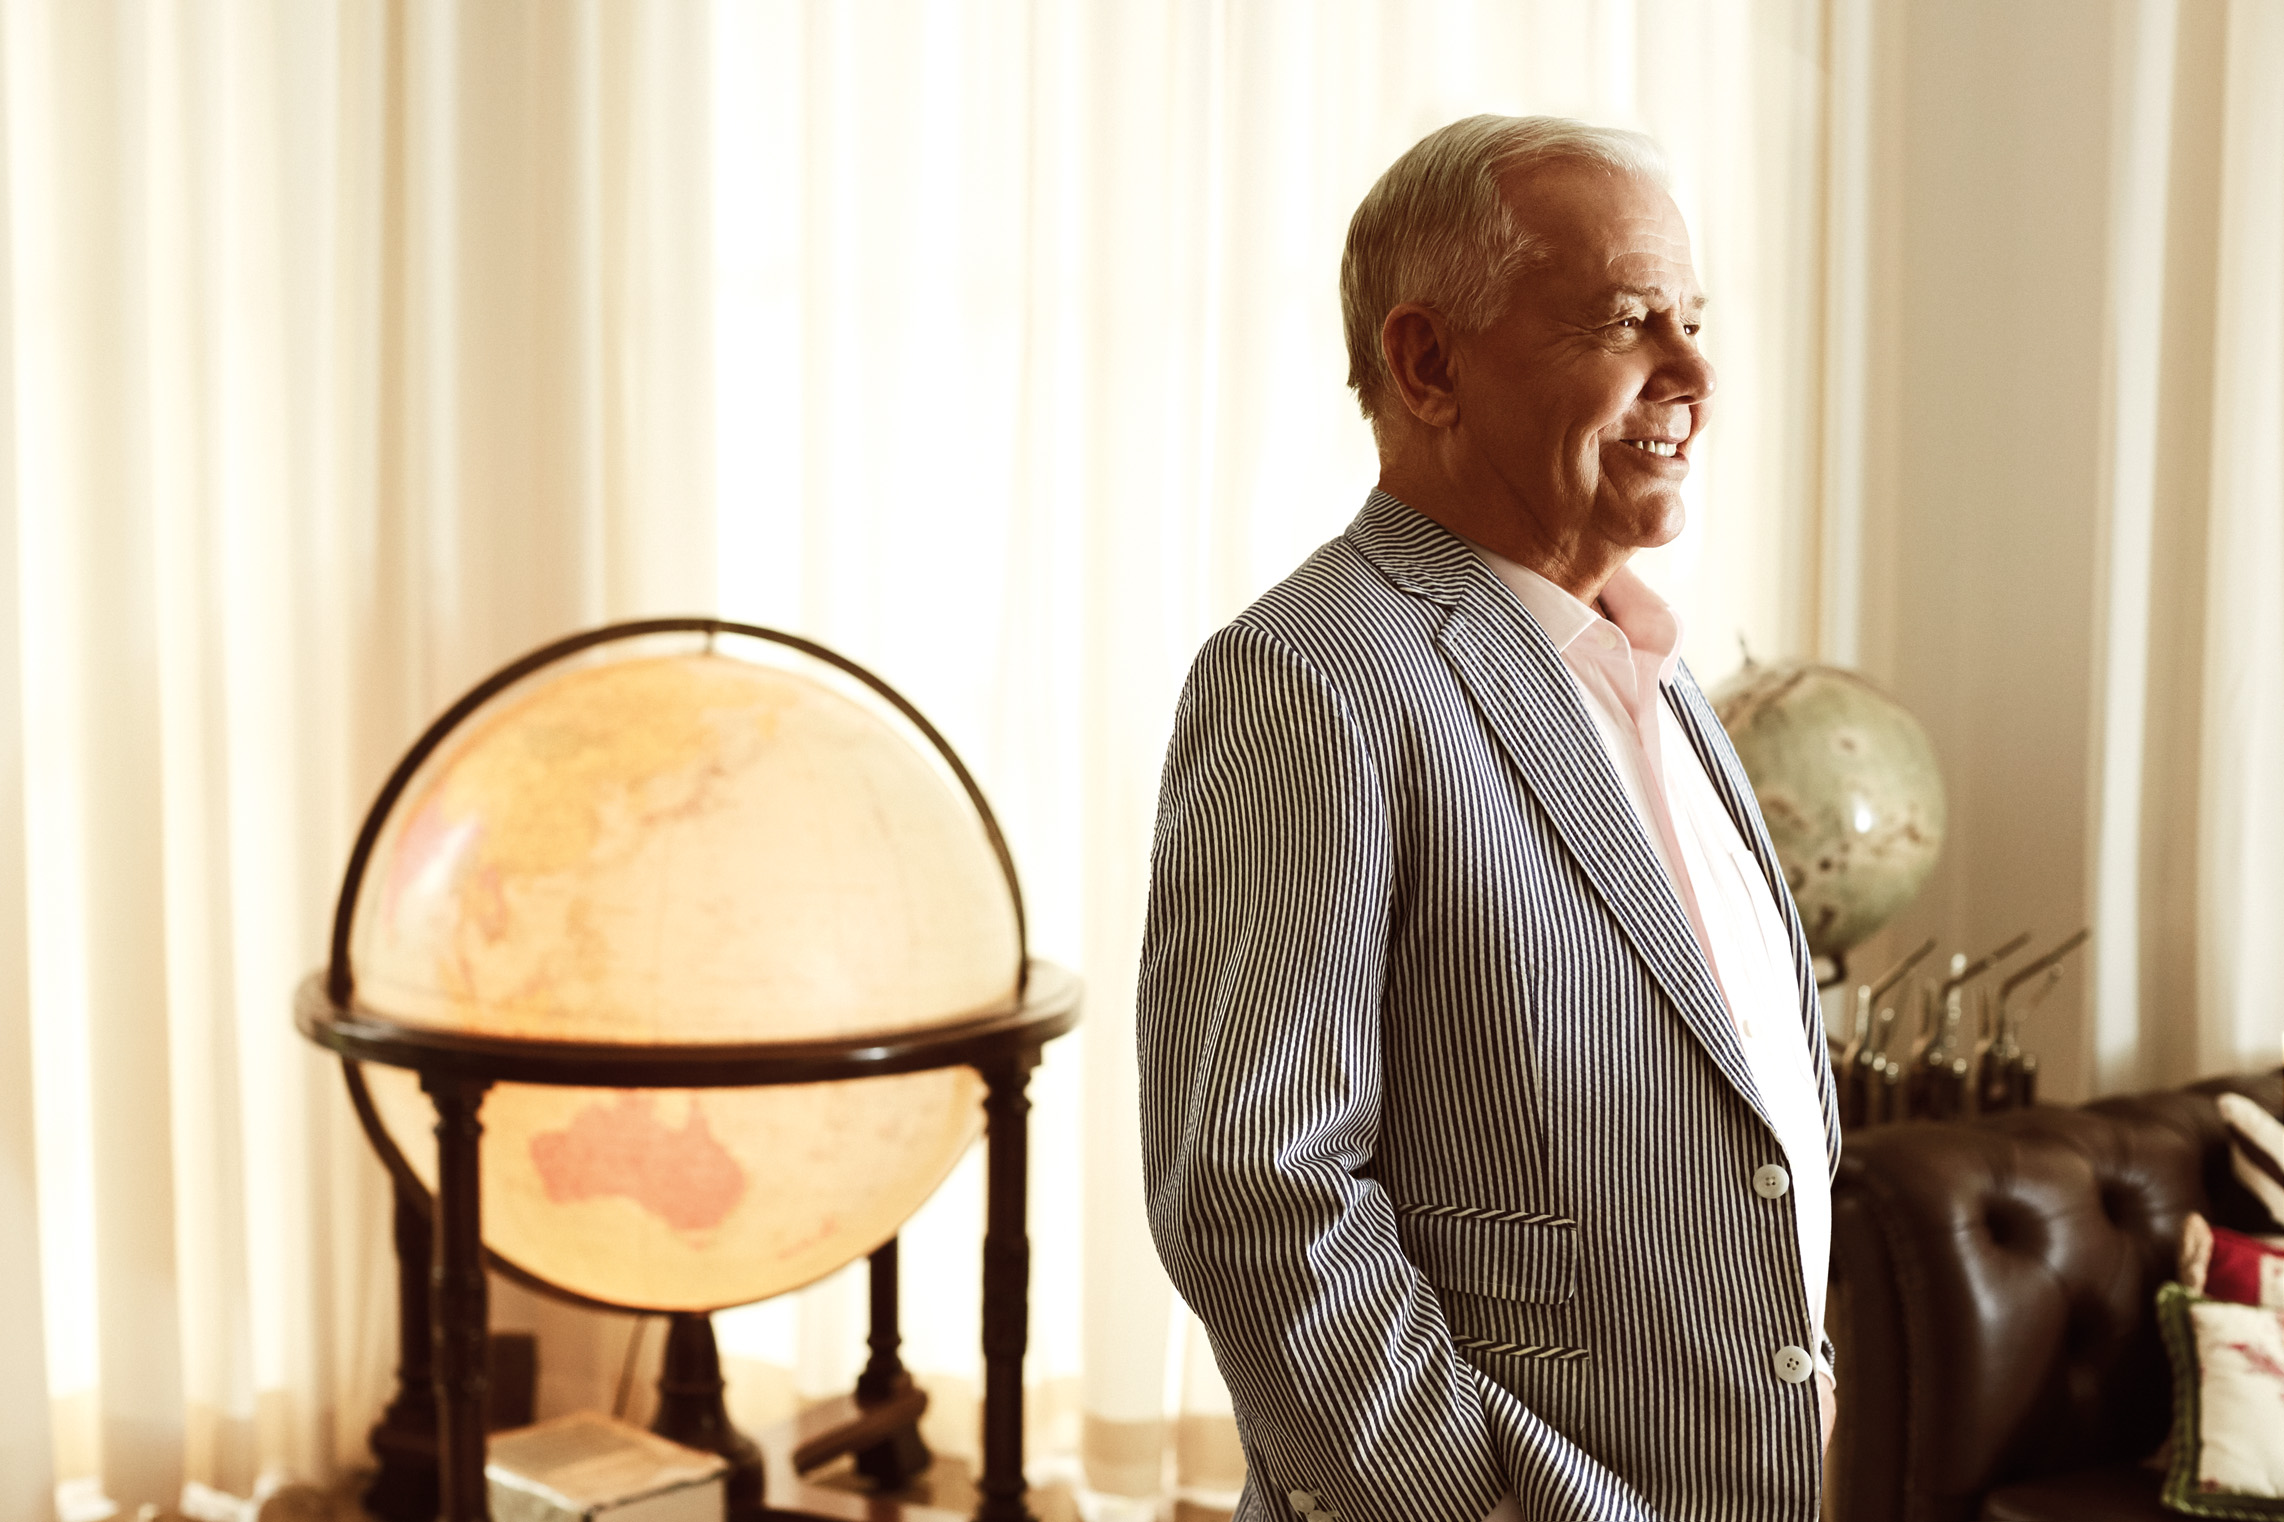 Jim Rogers takes on the #PrestigeQuestionnaire